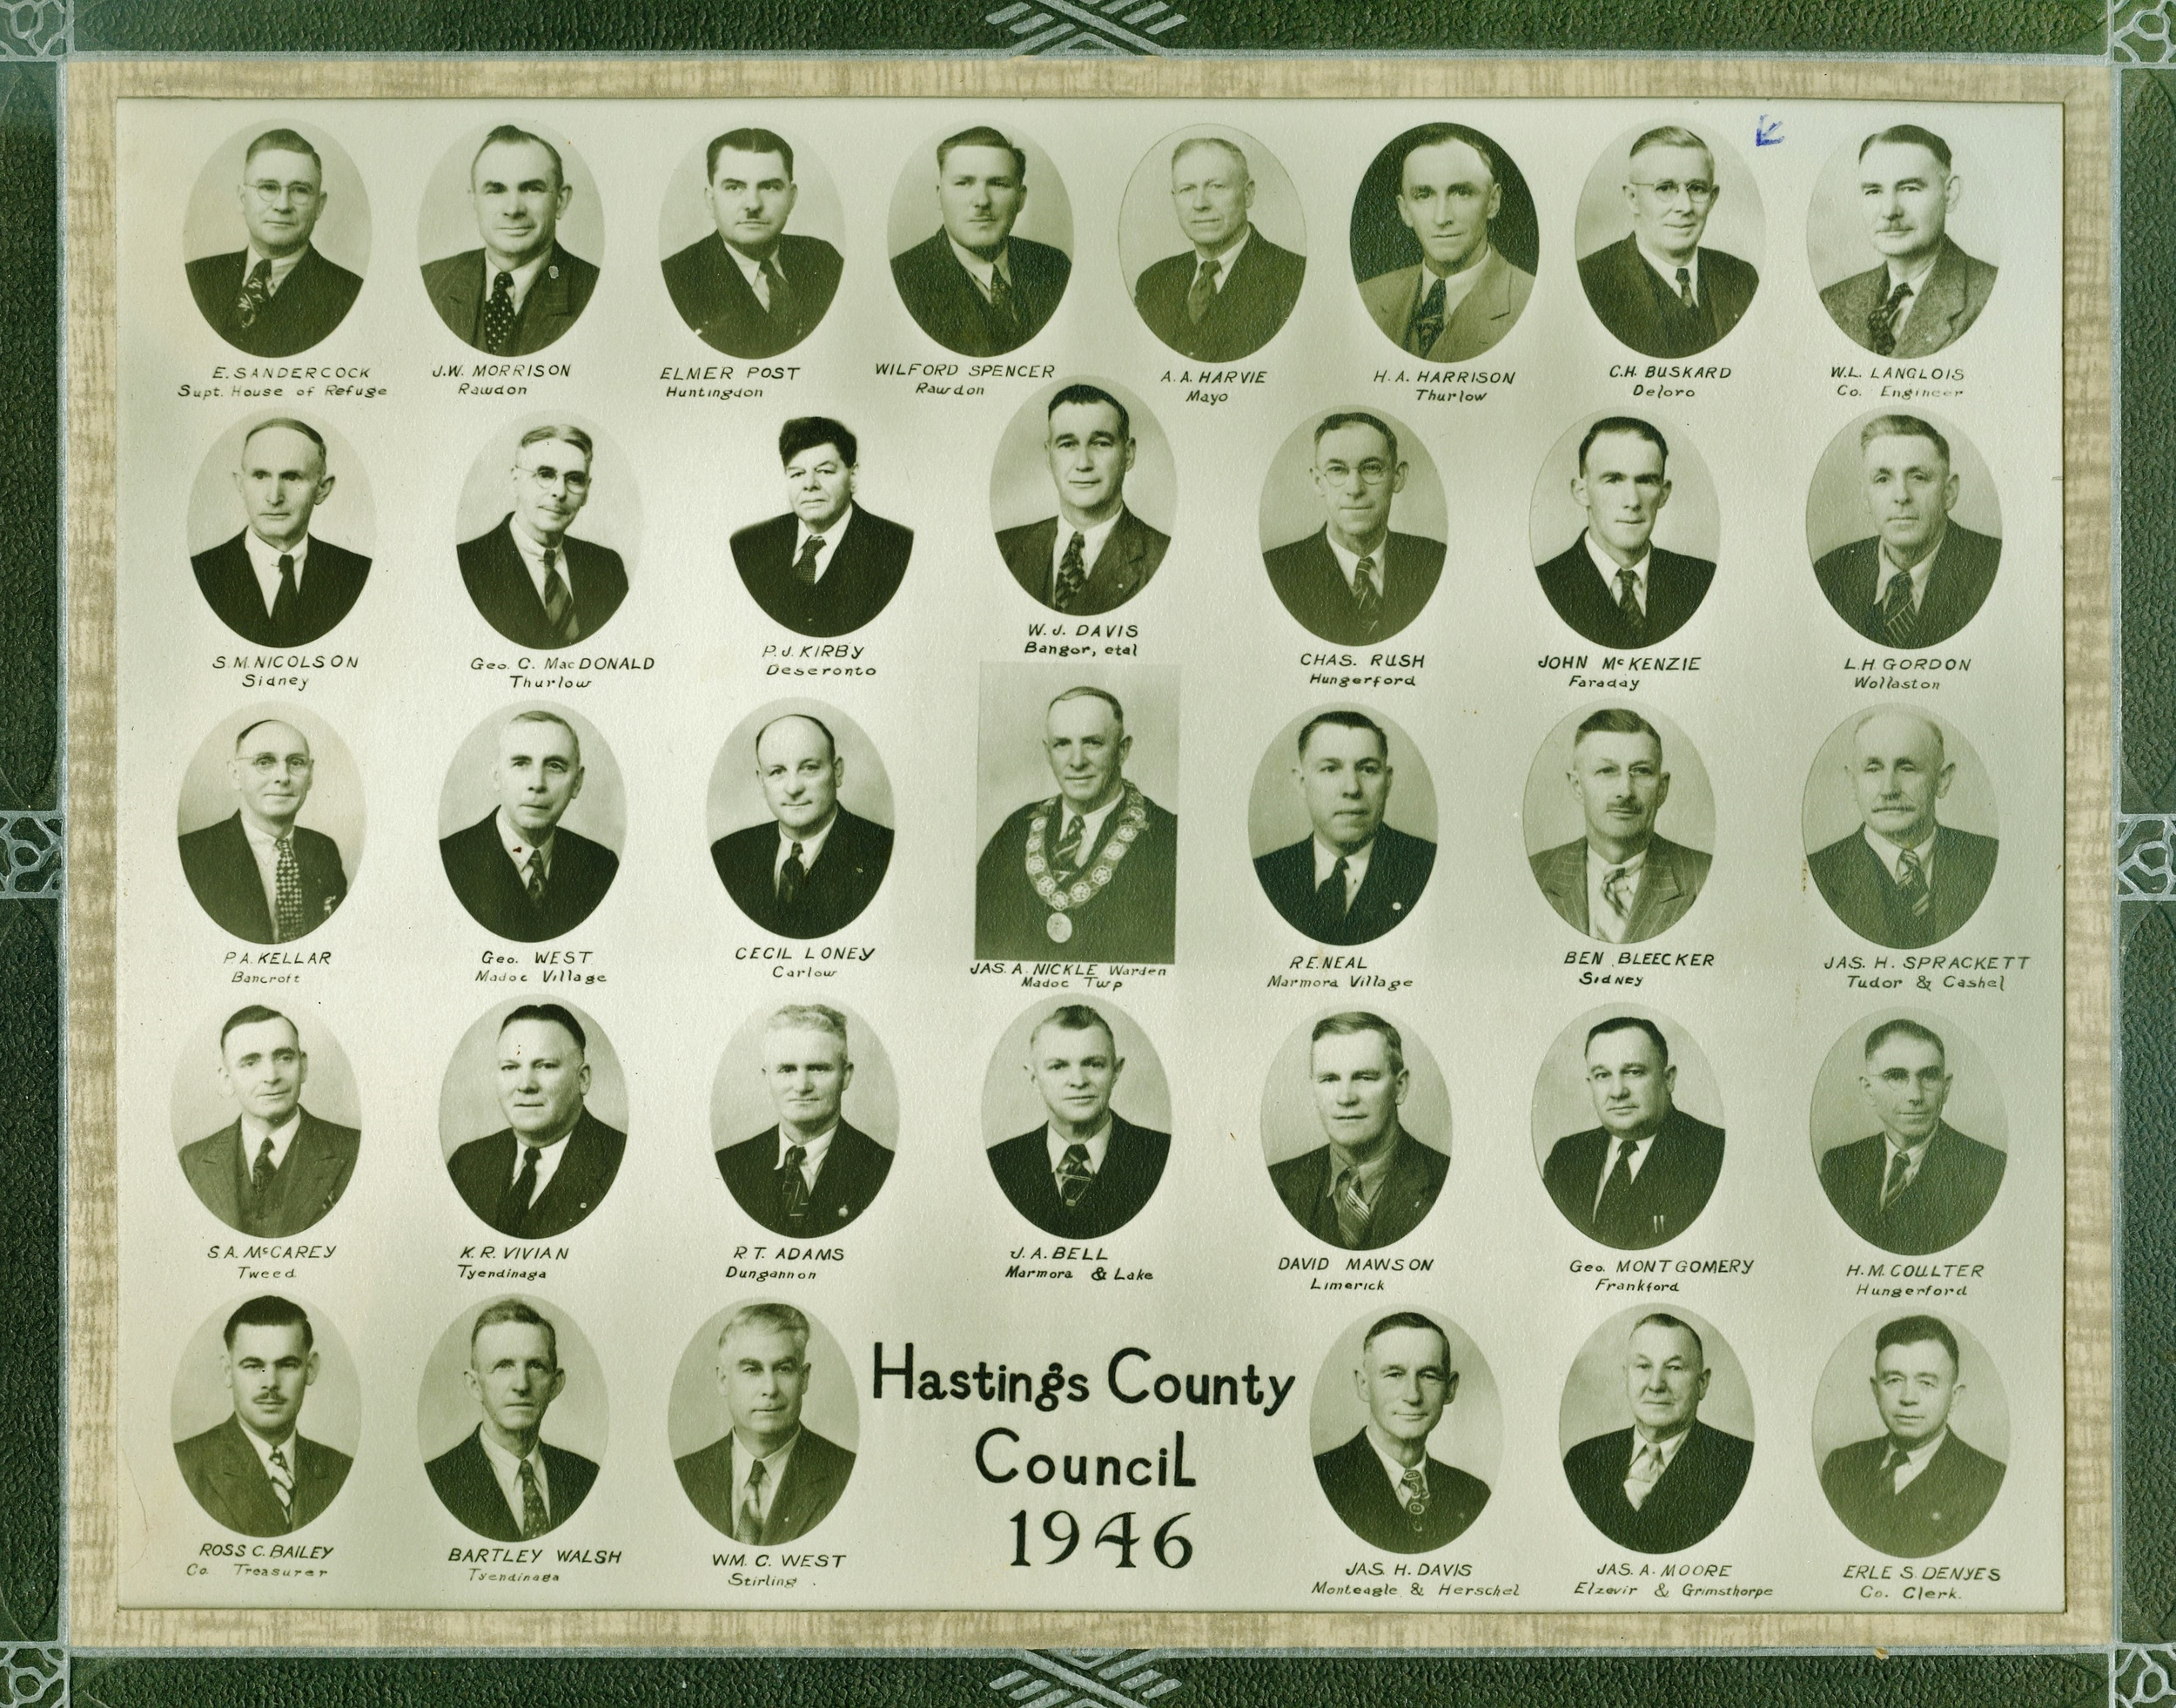 Hastings County Coucil, 1946, C.H. Buskard and Ralph Neal